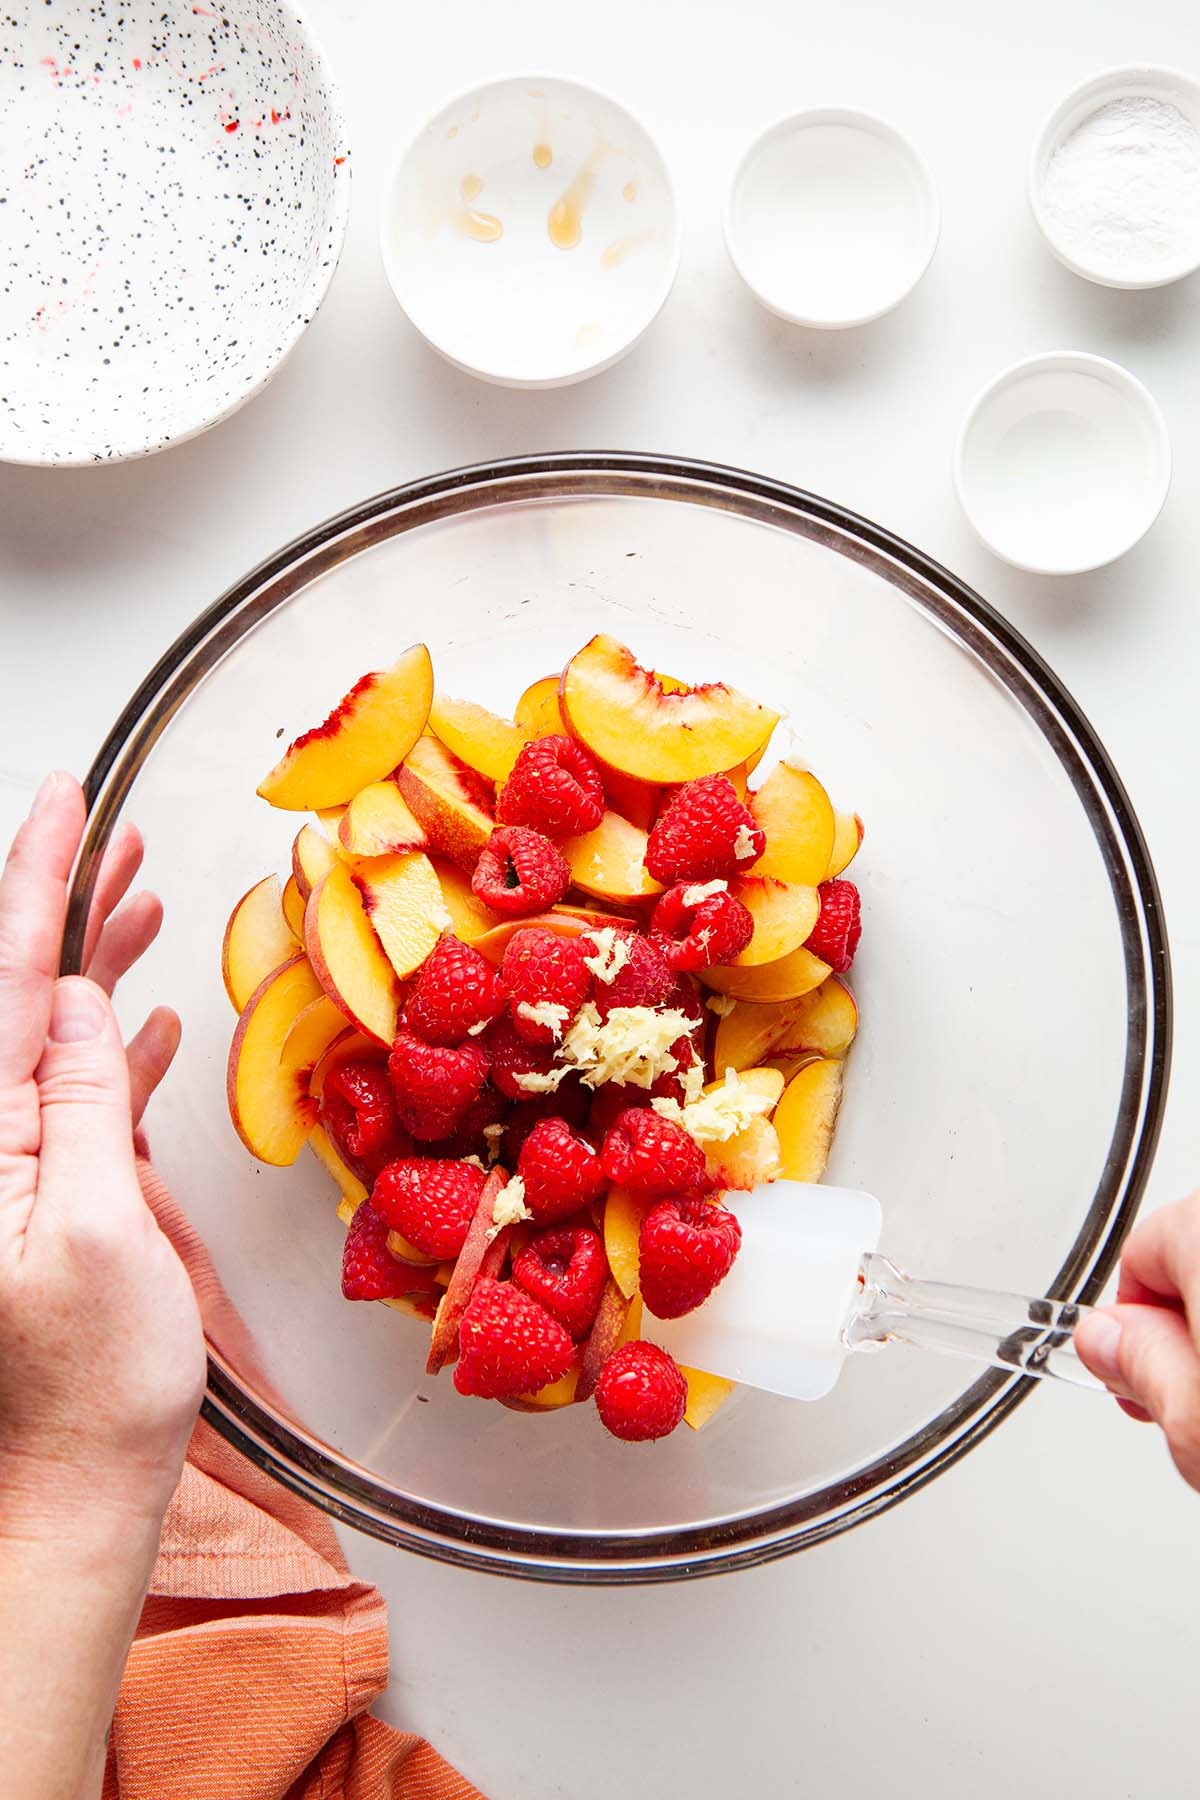 Raspberries and flavourings being mixed into the bowl of peaches.